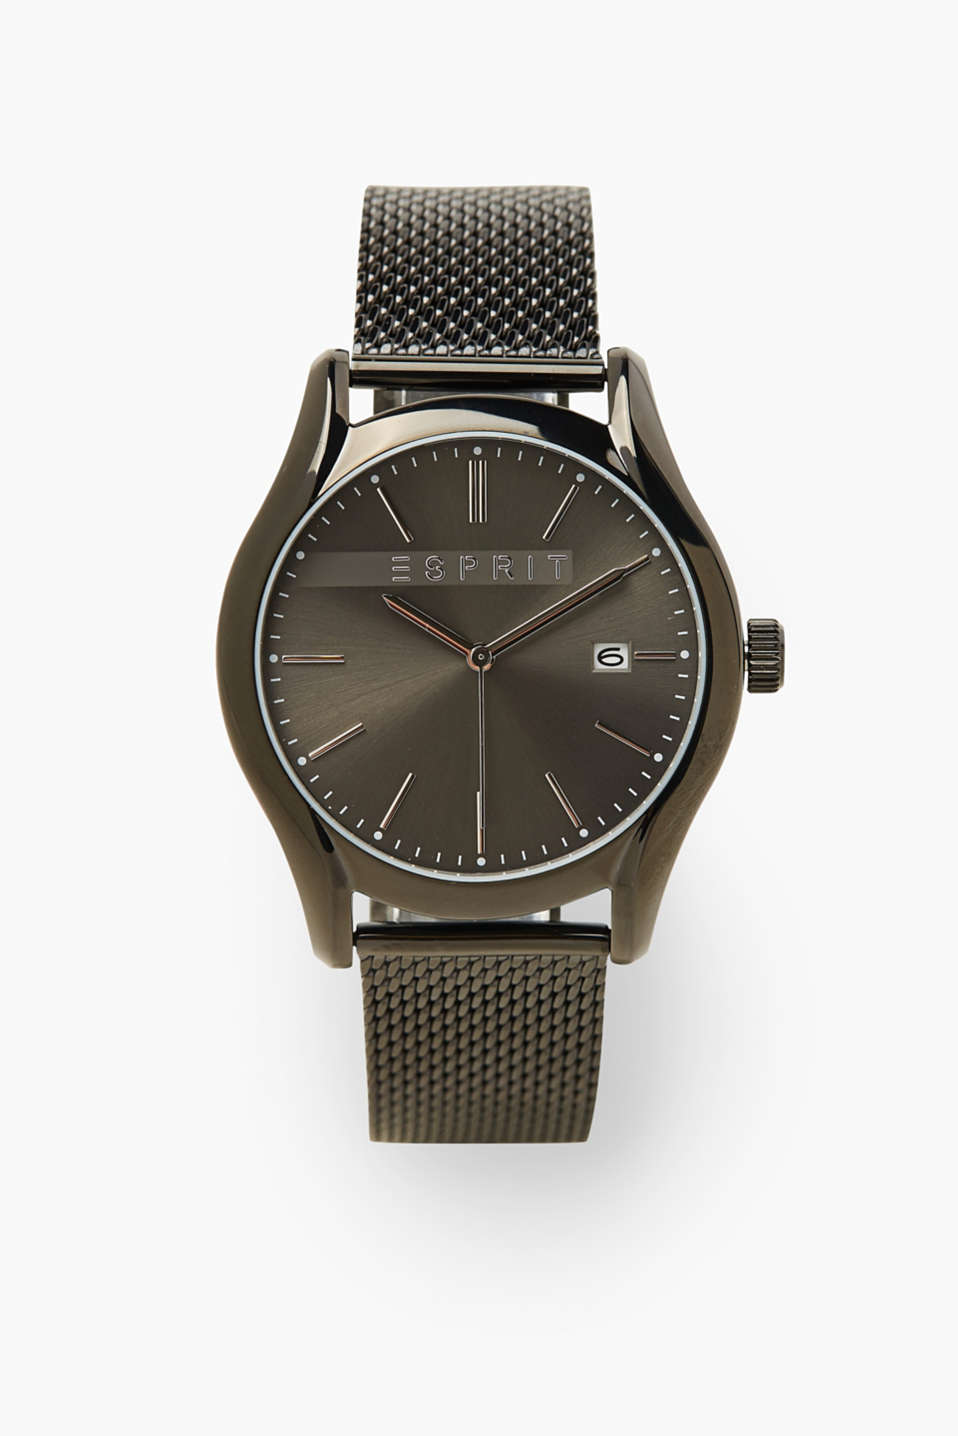 Esprit - Stainless steel watch with a Milanese strap